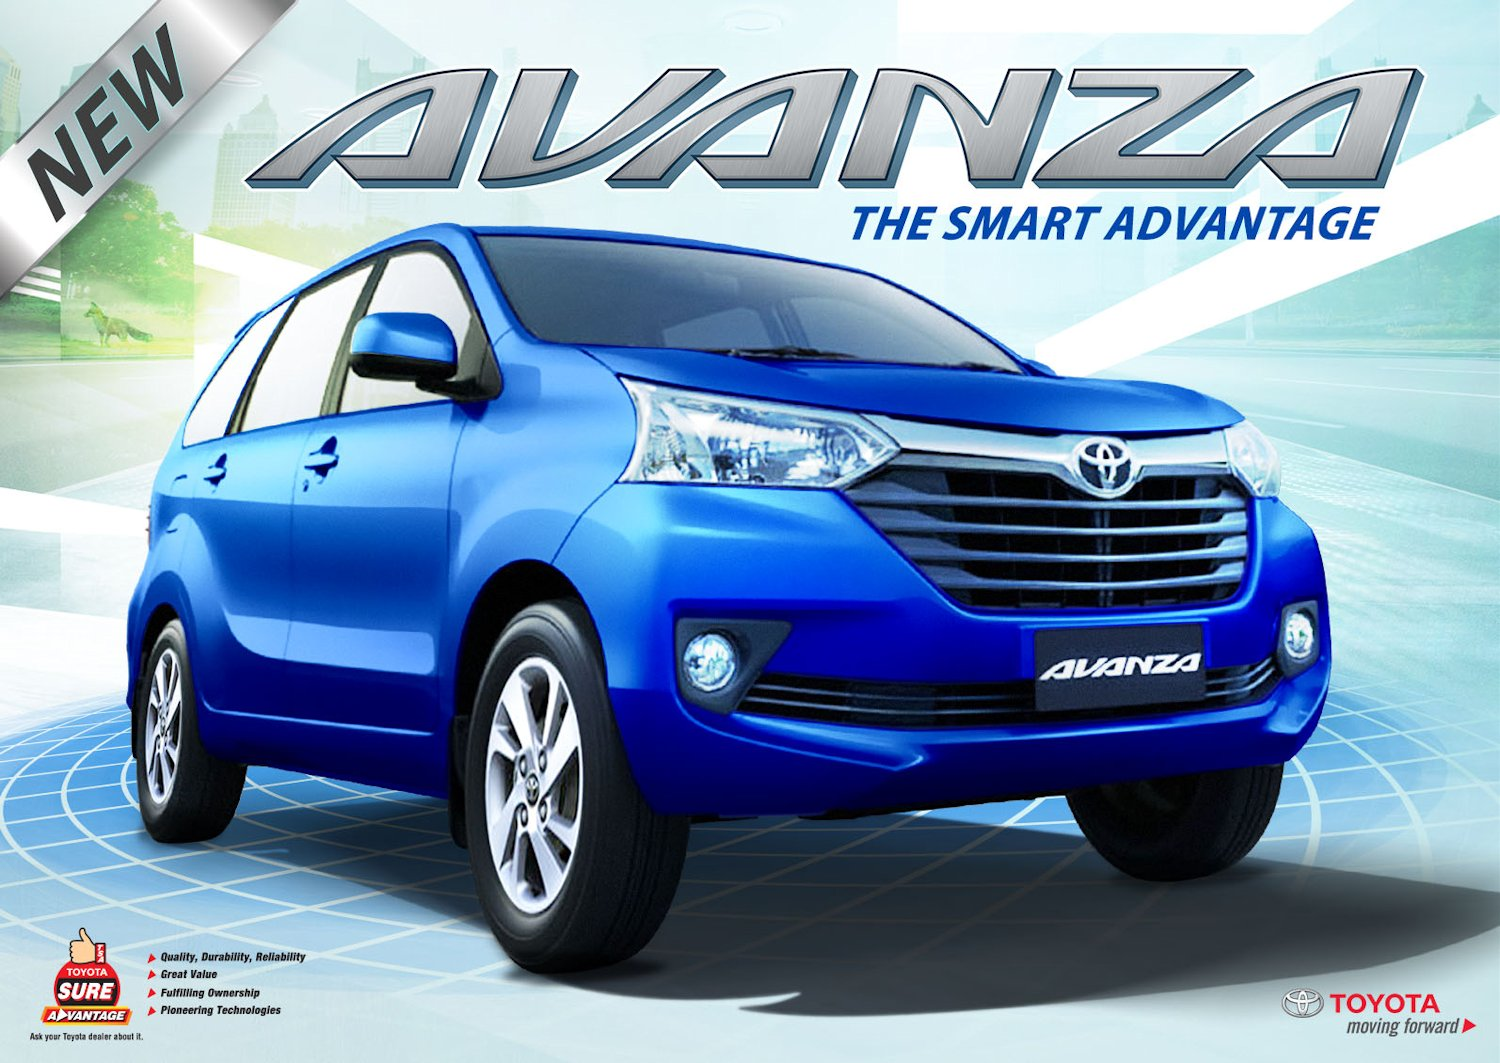 toyota motor philippines offers smart advantage with 2015 new